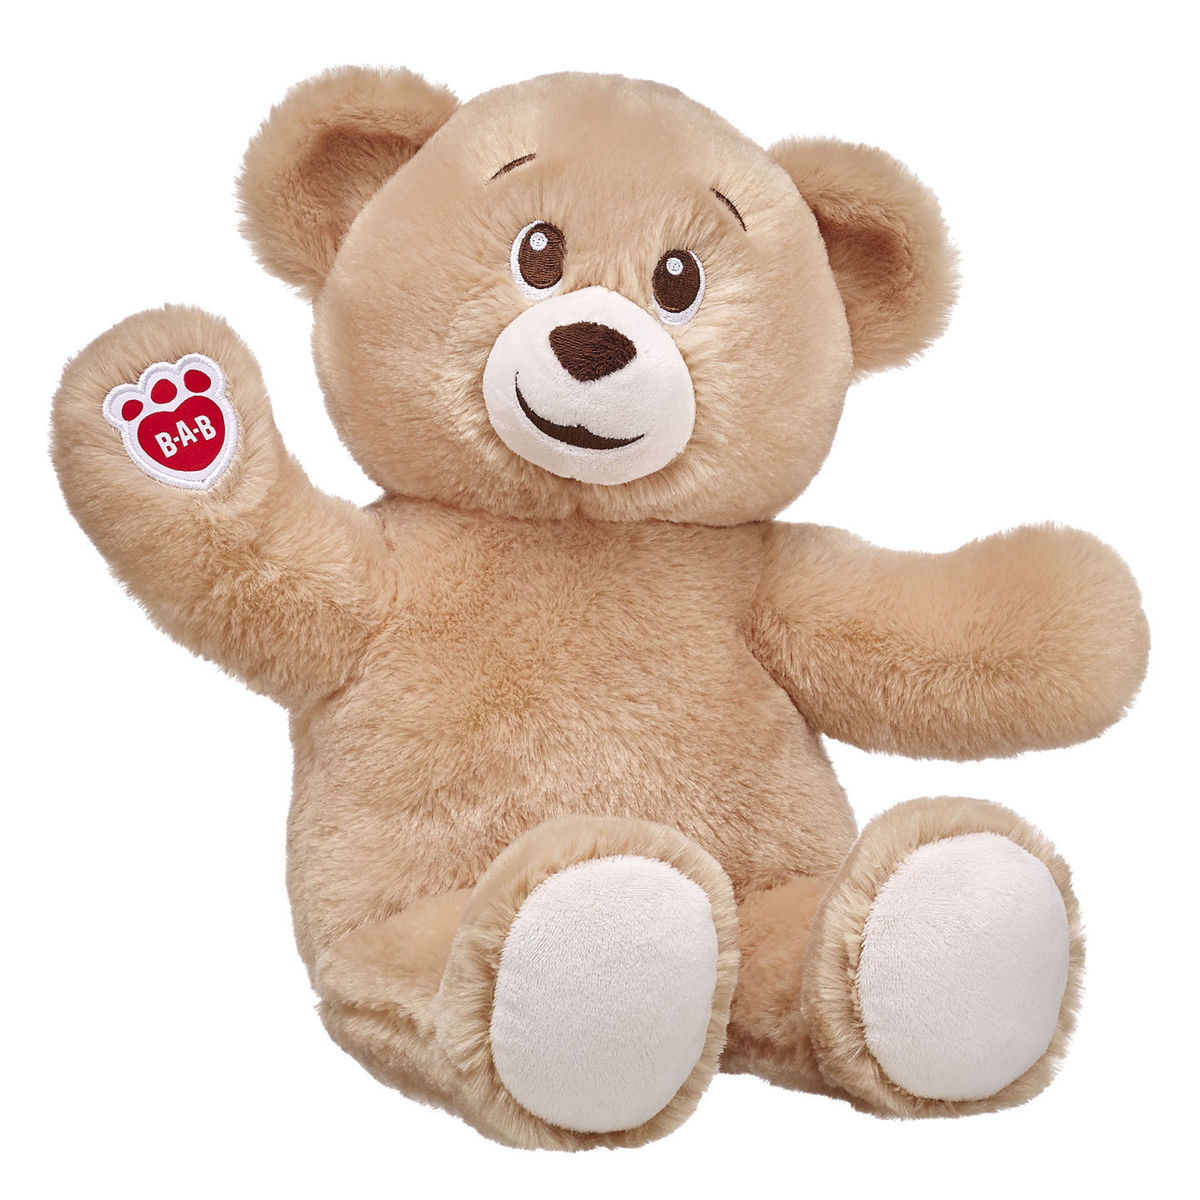 List Of Every Build A Bear